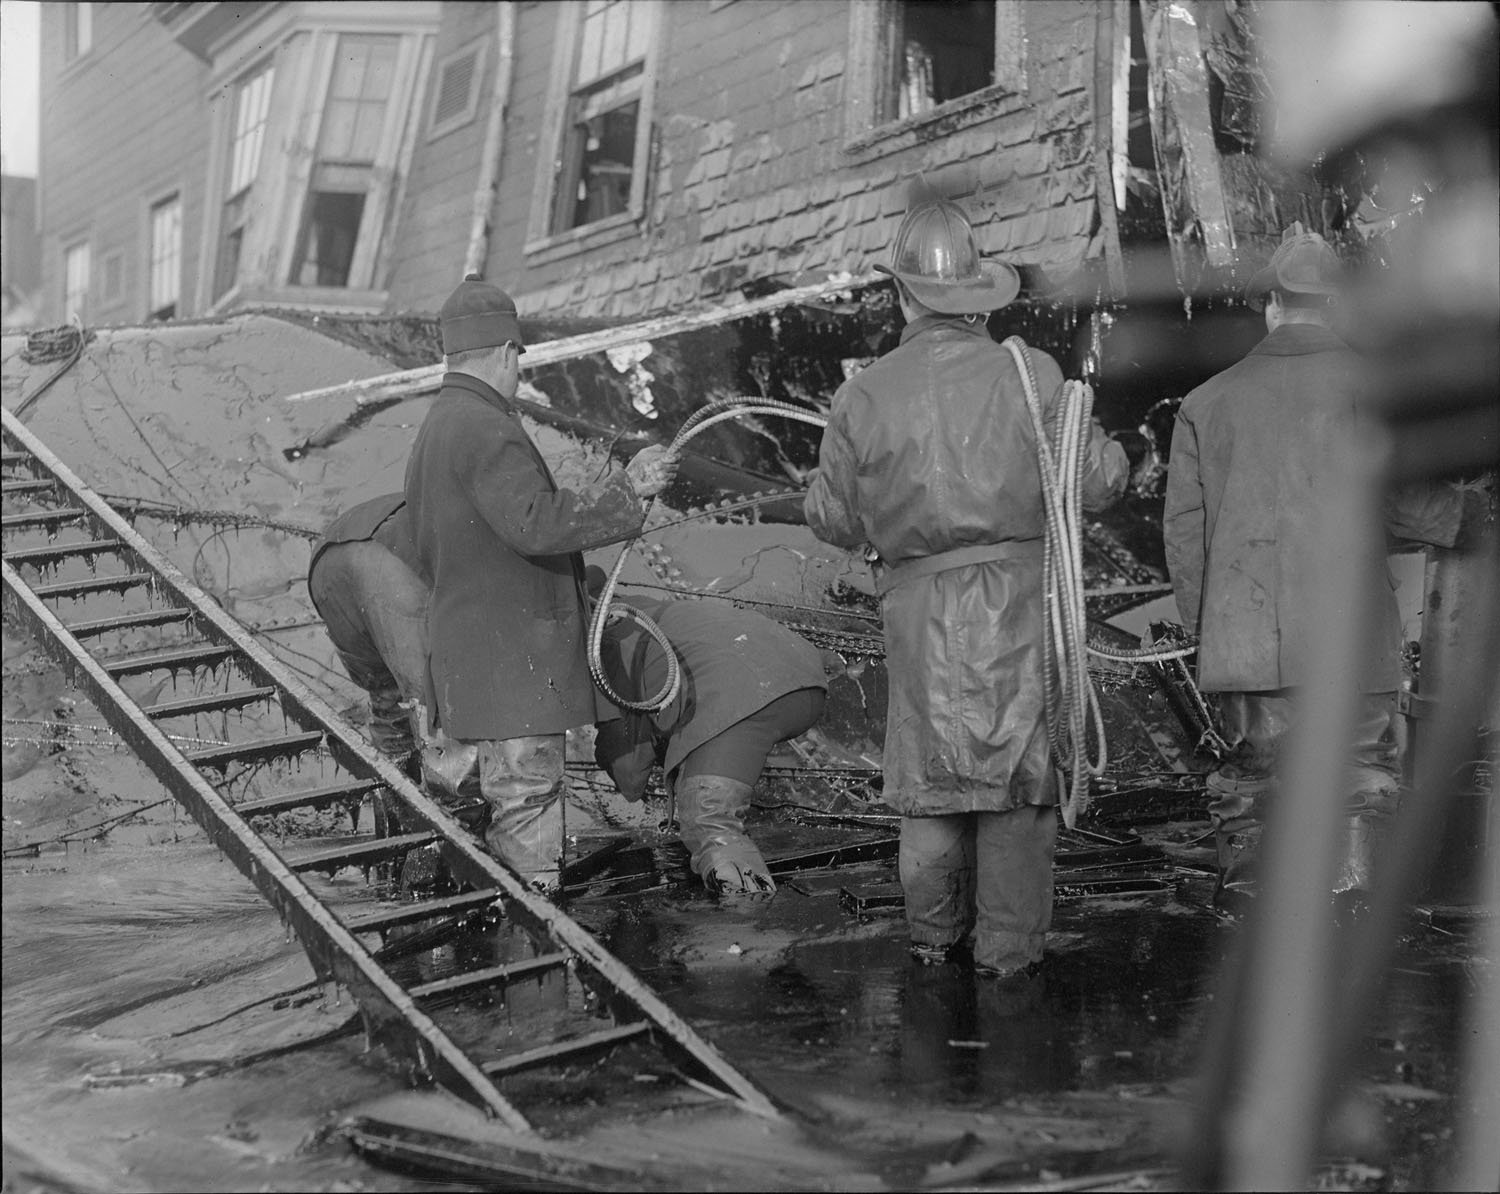 Firemen standing in knee-deep molasses while searching for survivors. 